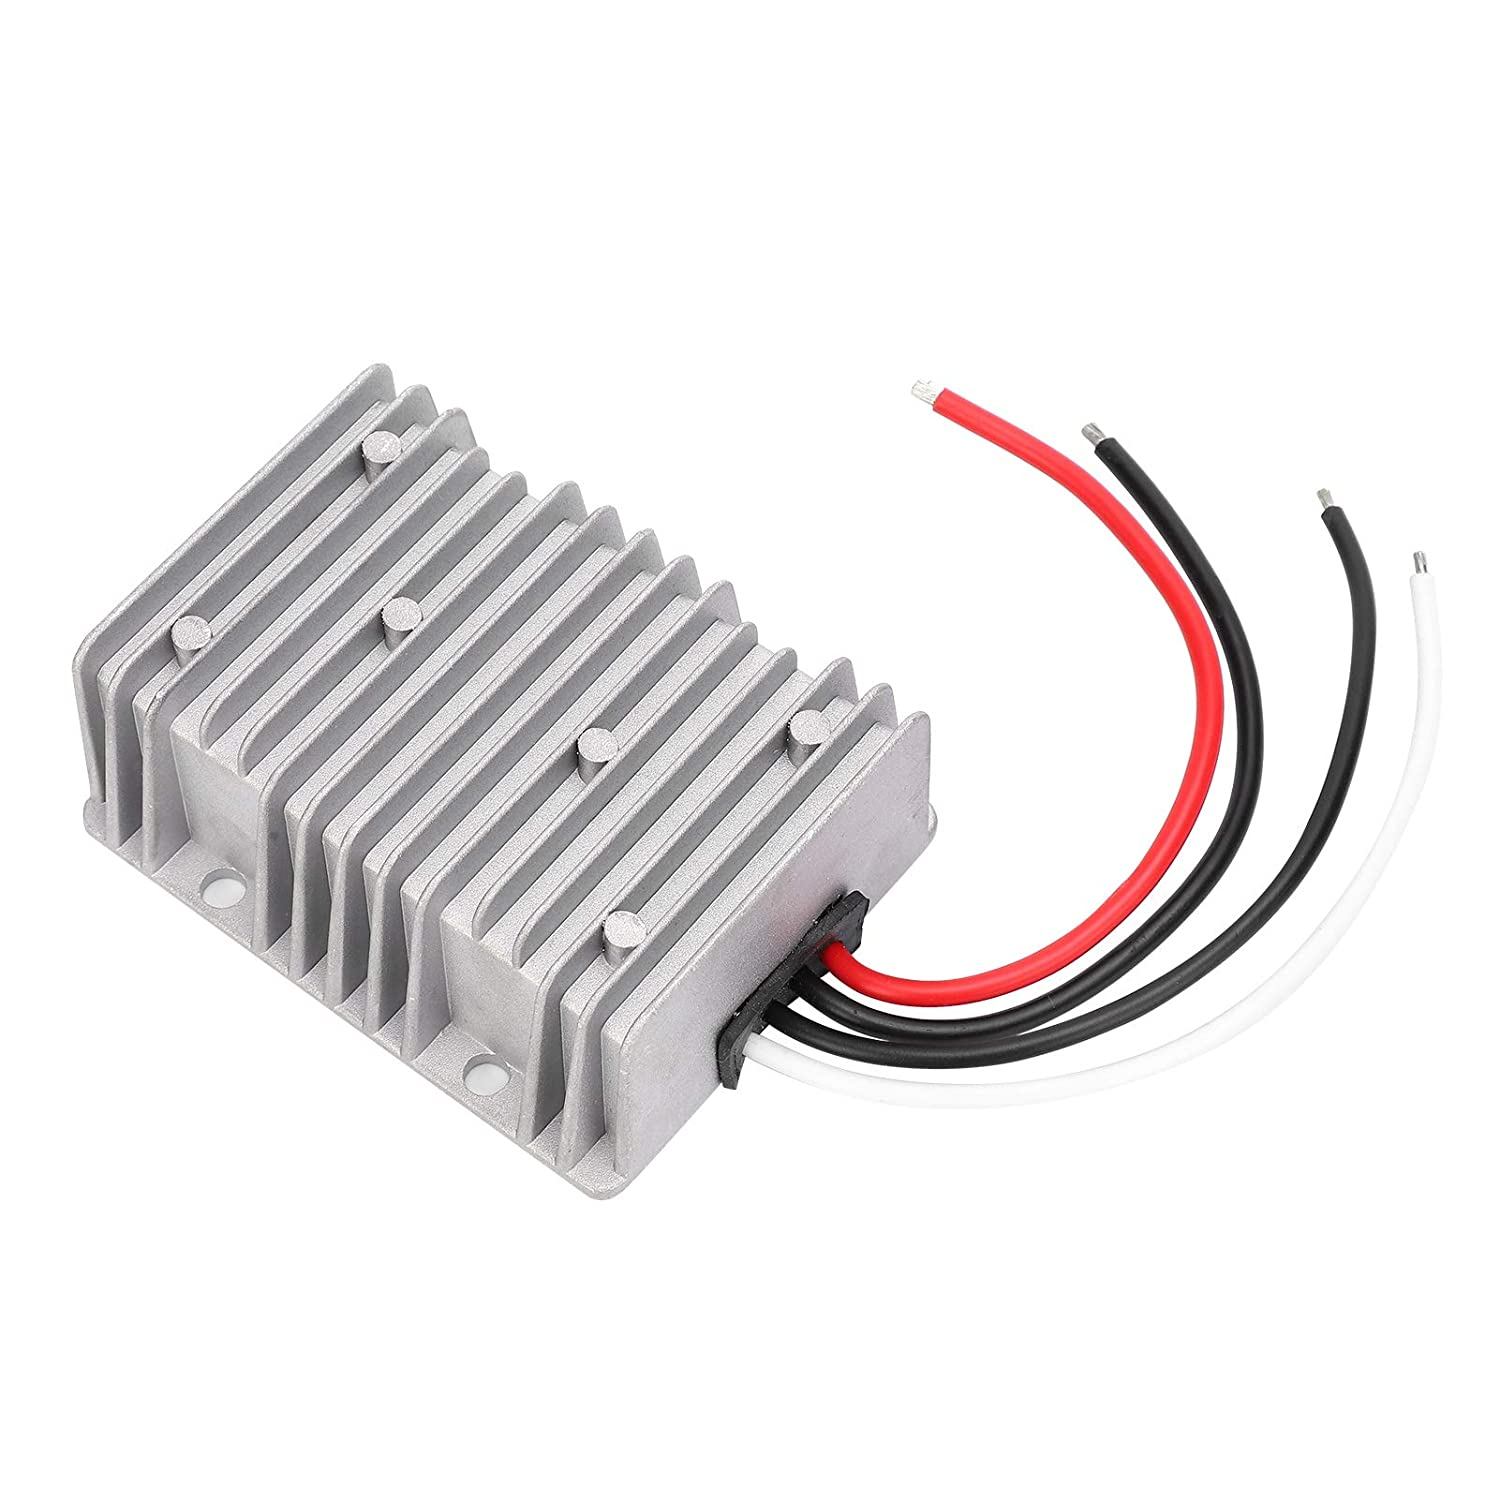 Buck Converter Power Voltage Reducer Step All items free shipping 720W Dow Seattle Mall 30A